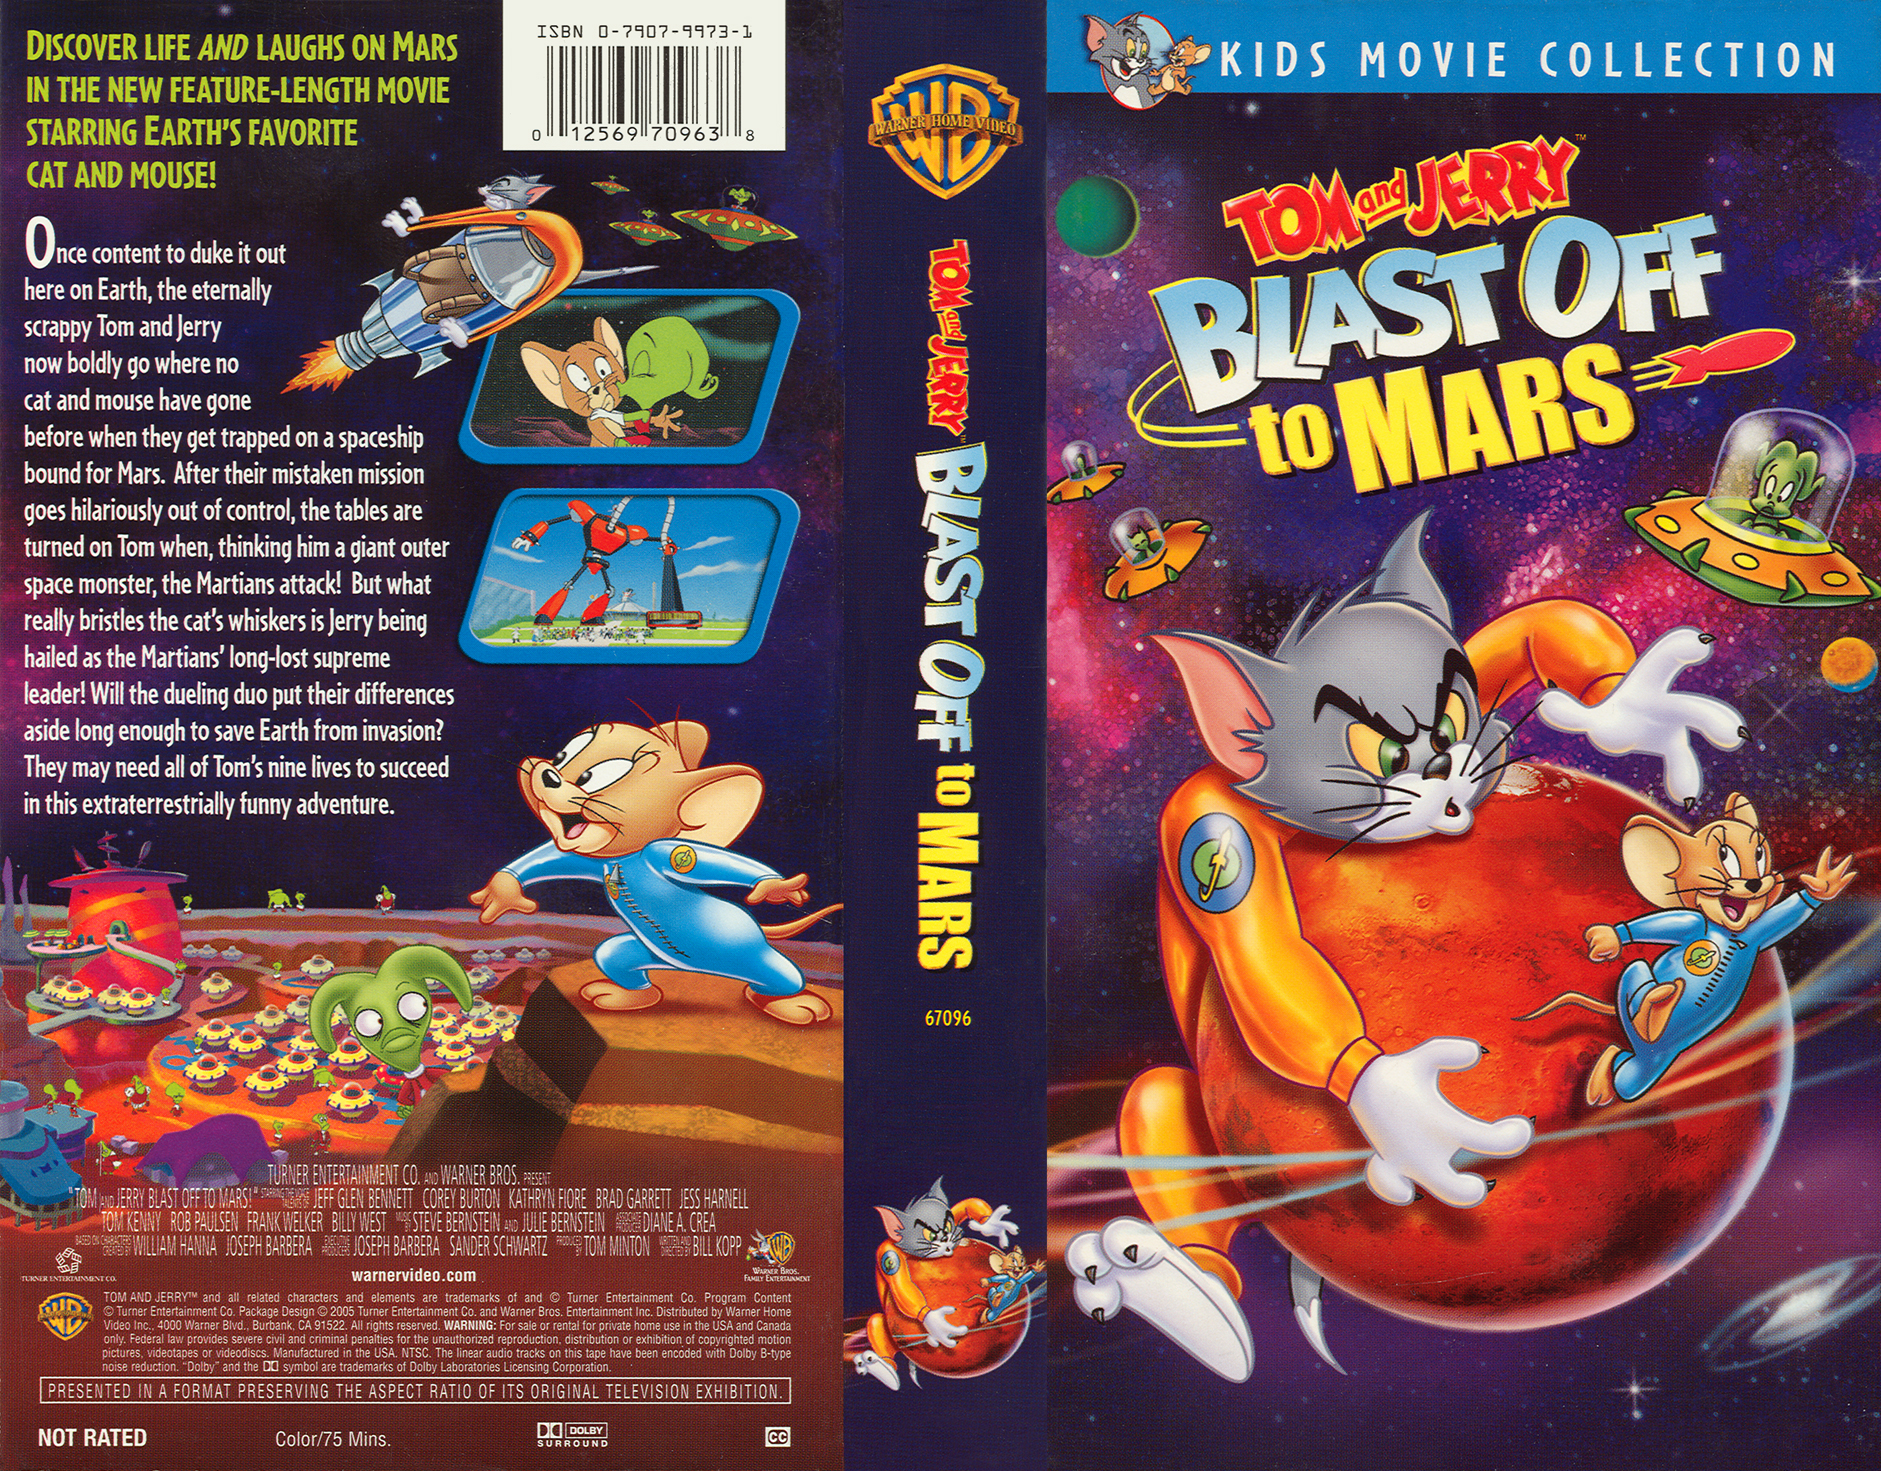 Tom And Jerry Blast Off To Mars Poster | www.galleryhip ...